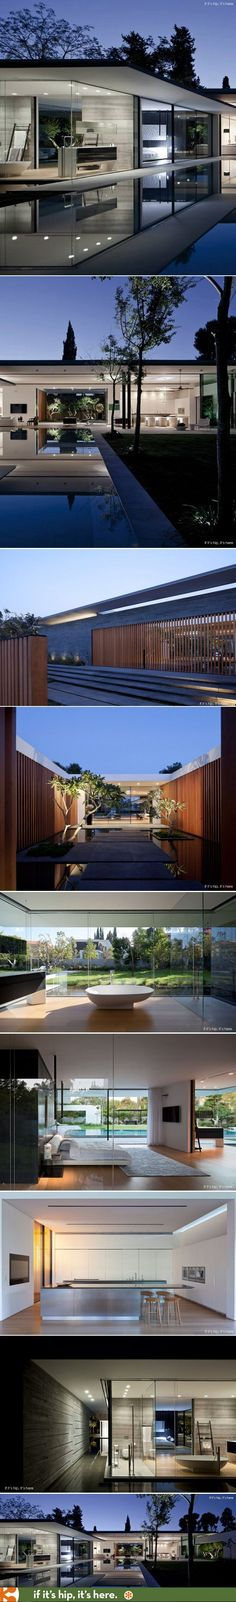 Minimal and modern houses characteristic style is defined by the planar surfaces.